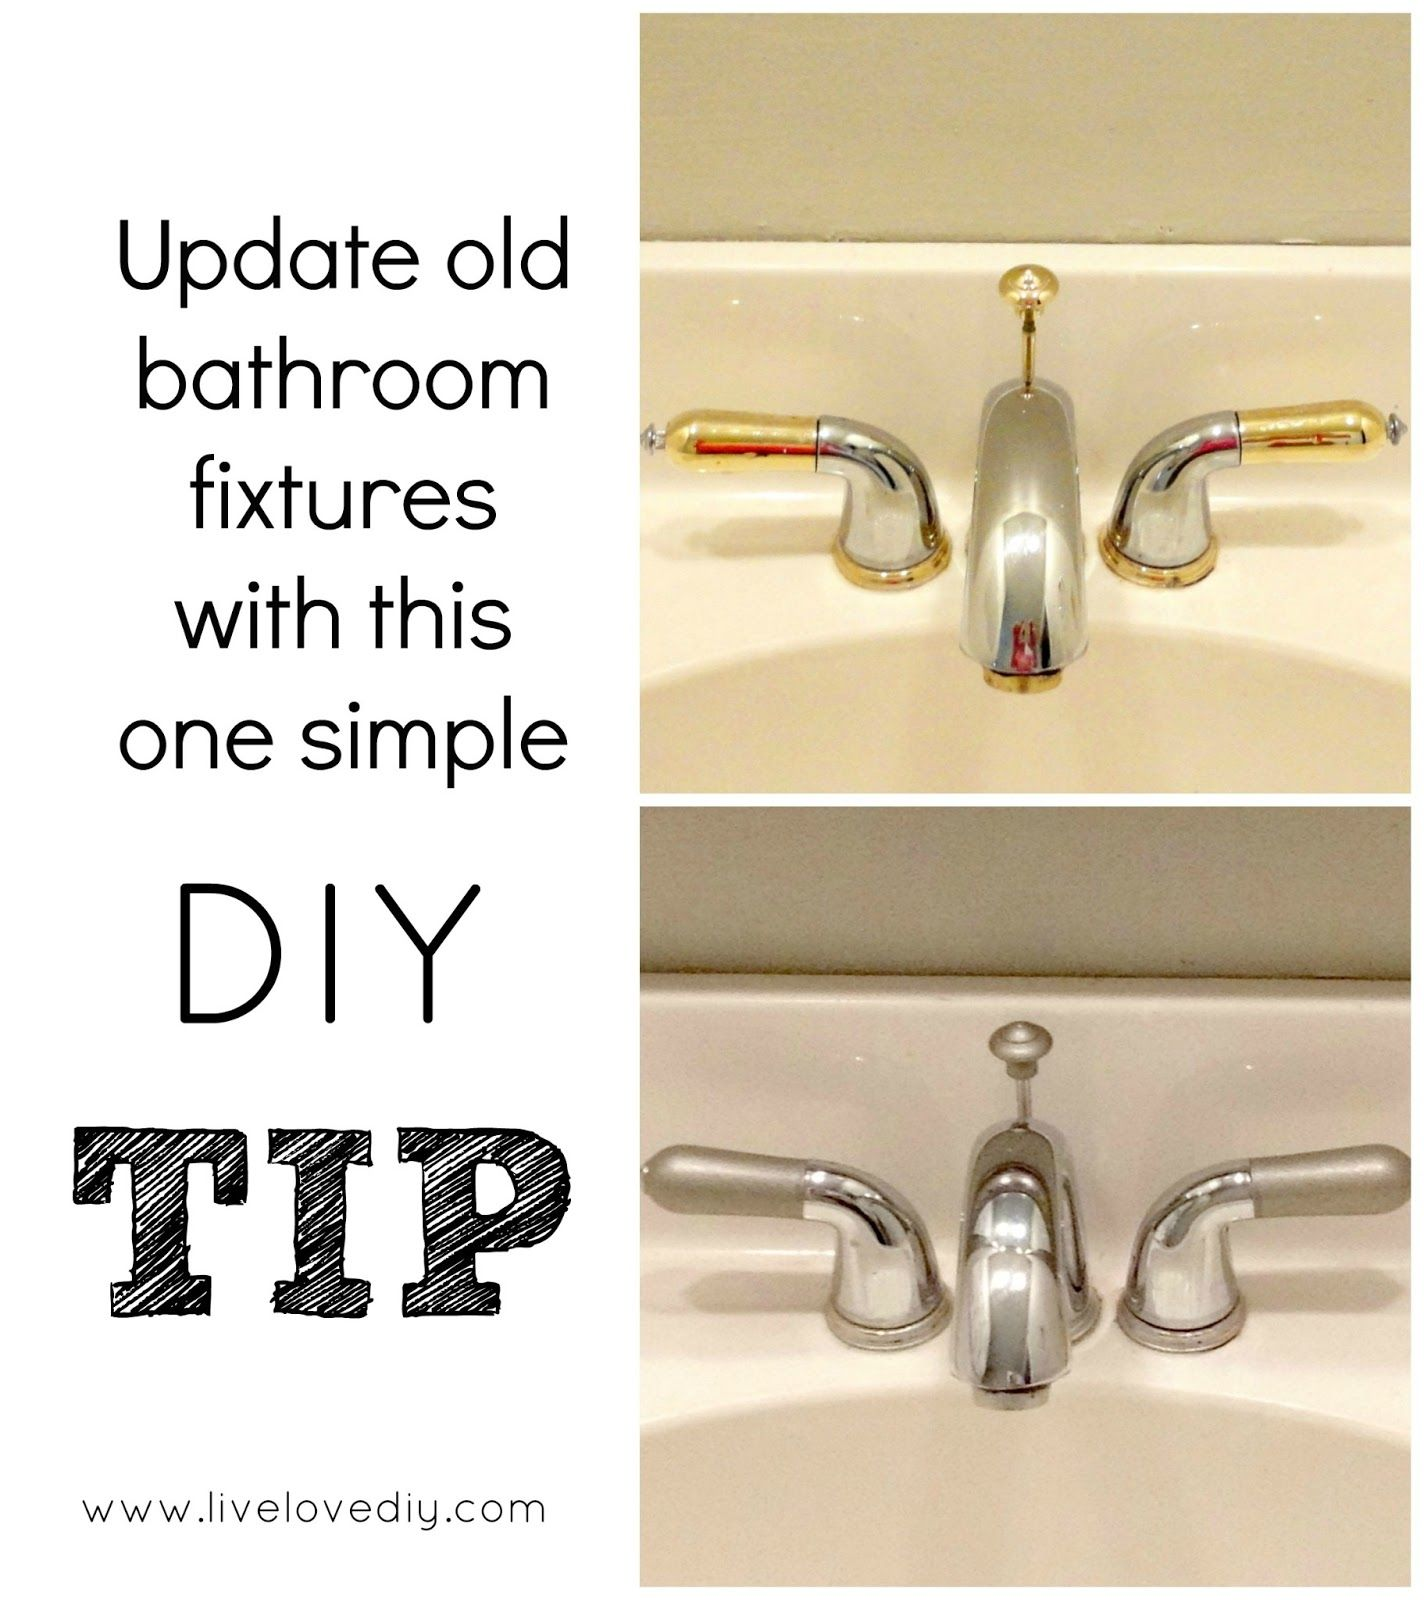 Removed The Handles Drain Stopper And Spray Painted Them With Brushed Nickel Silver Metallic Pai Diy Home Improvement Bathroom Makeover Bathroom Fixtures